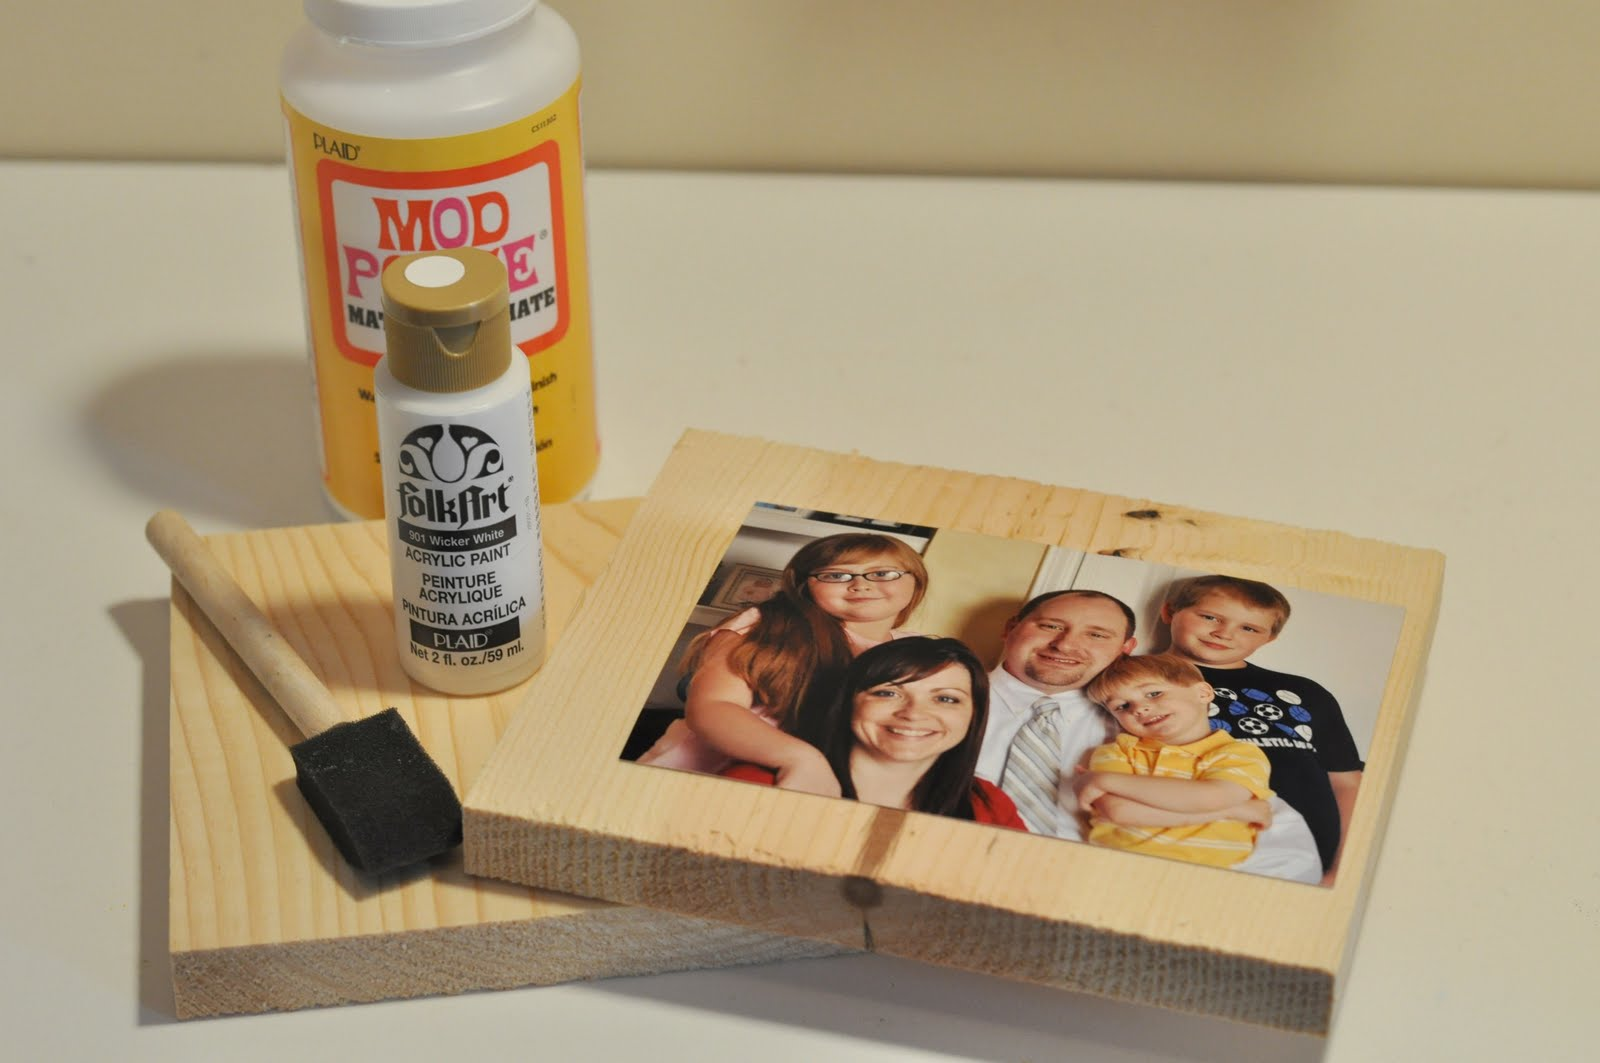 She's crafty: The mod podge picture